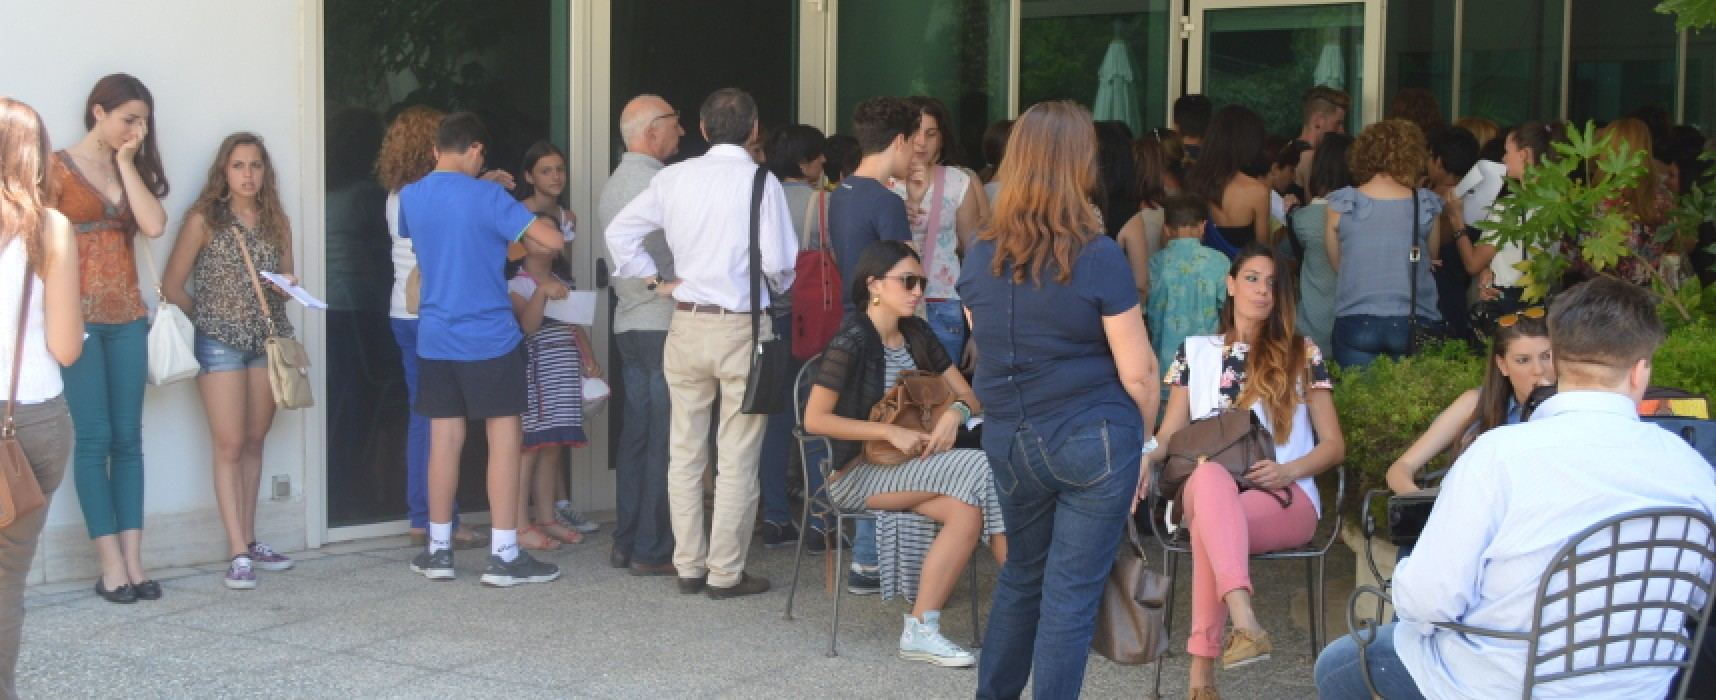 "In fila per un posto da comparsa, il casting del film ""La scelta"" di Michele Placido / VIDEO"